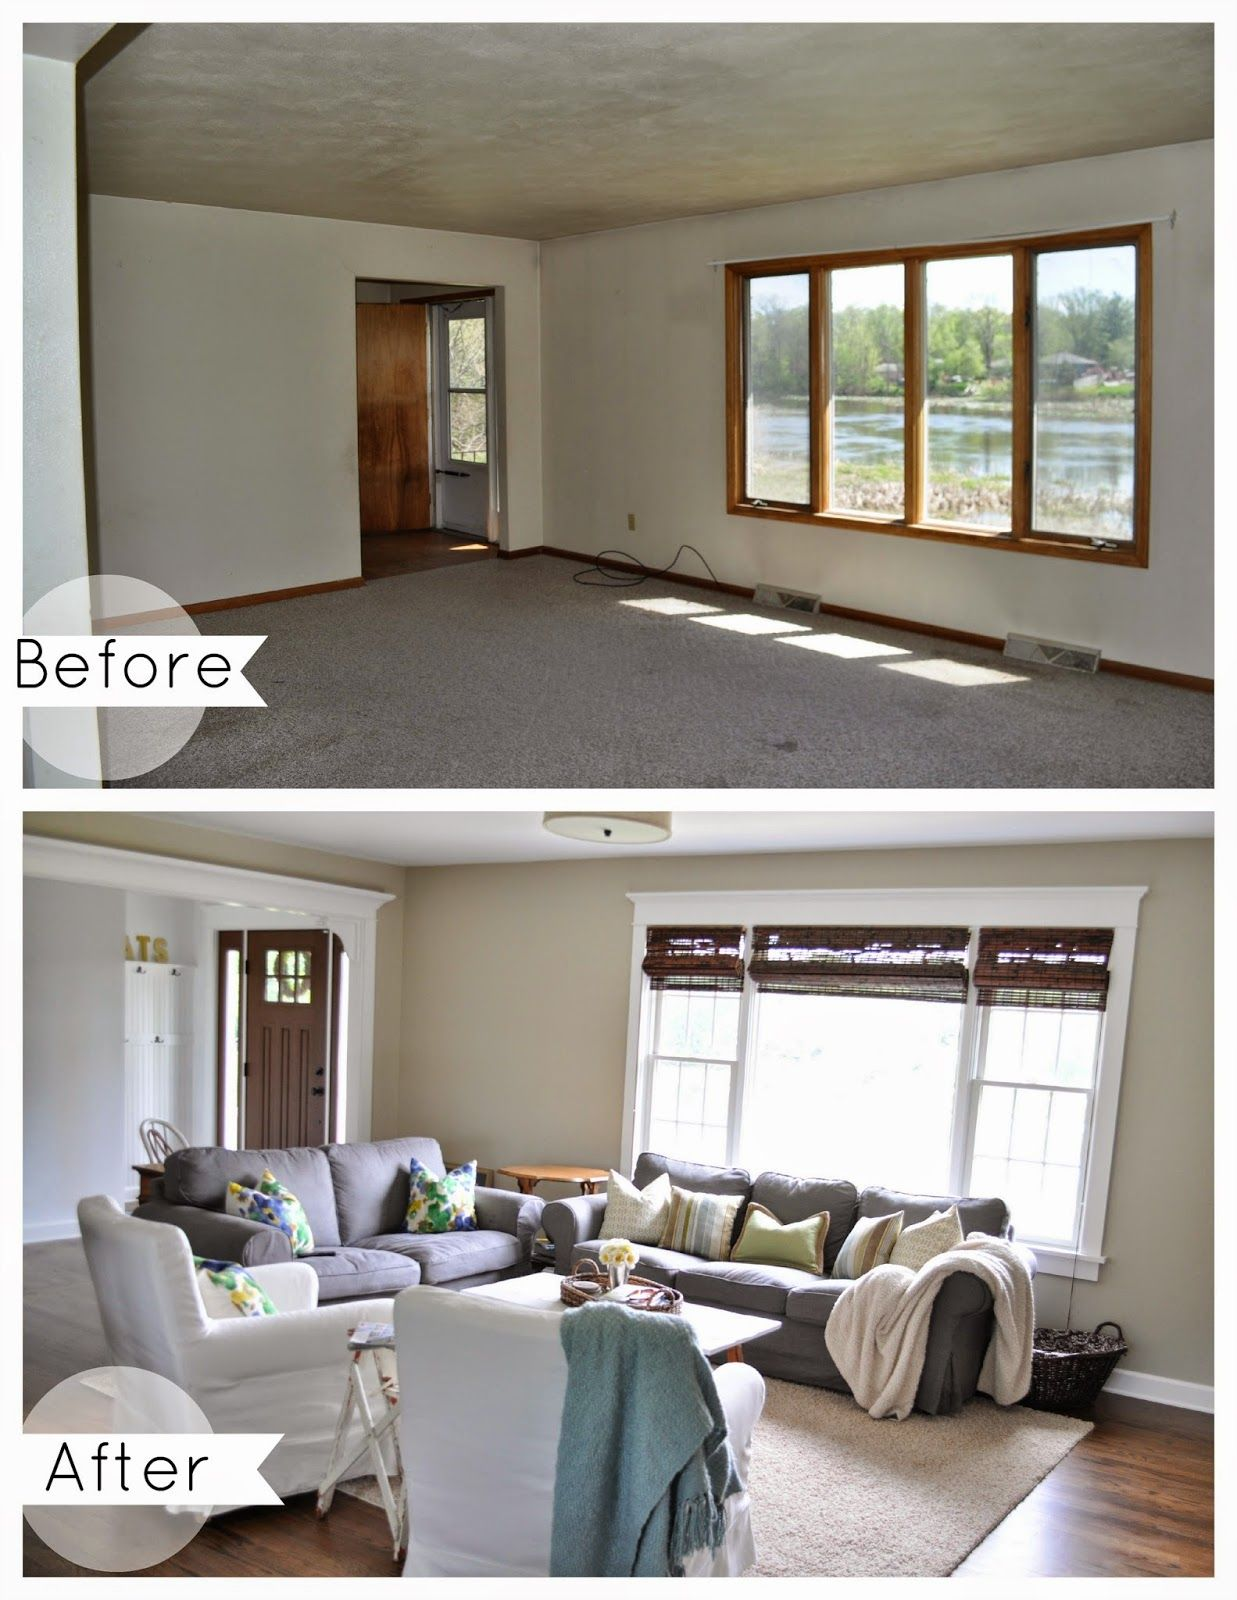 40+ Living room crown molding before and after ideas in 2021